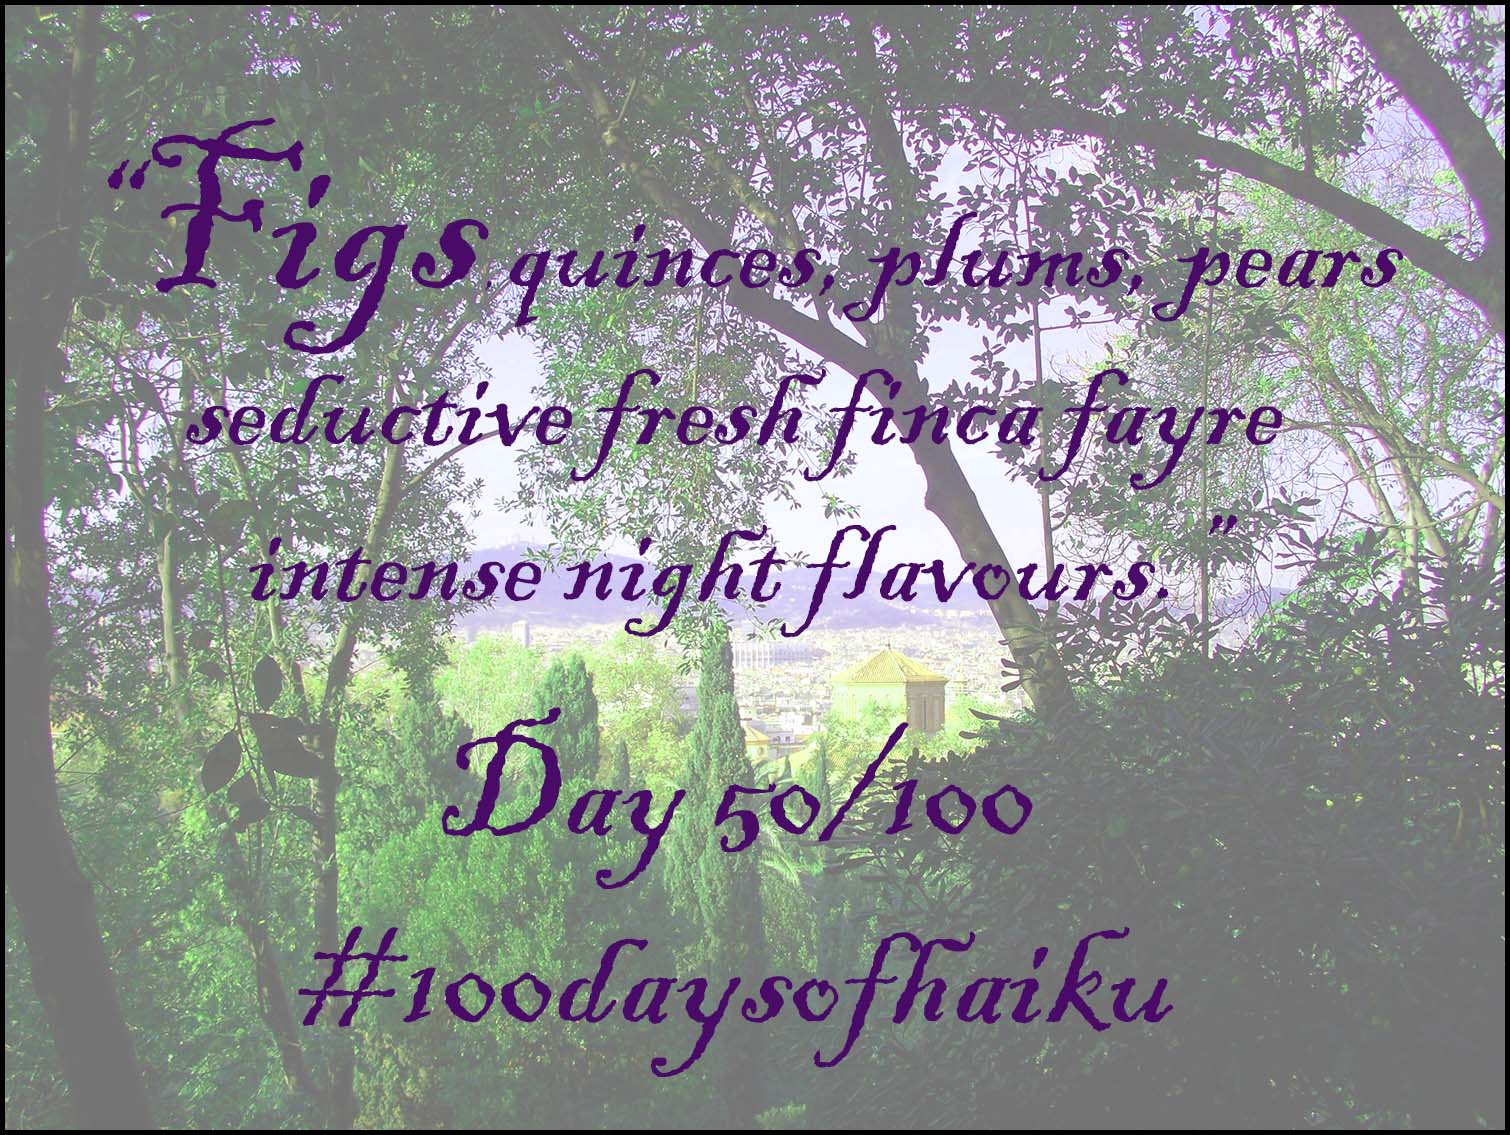 50 days of haiku - figs, quinces, plums, pears